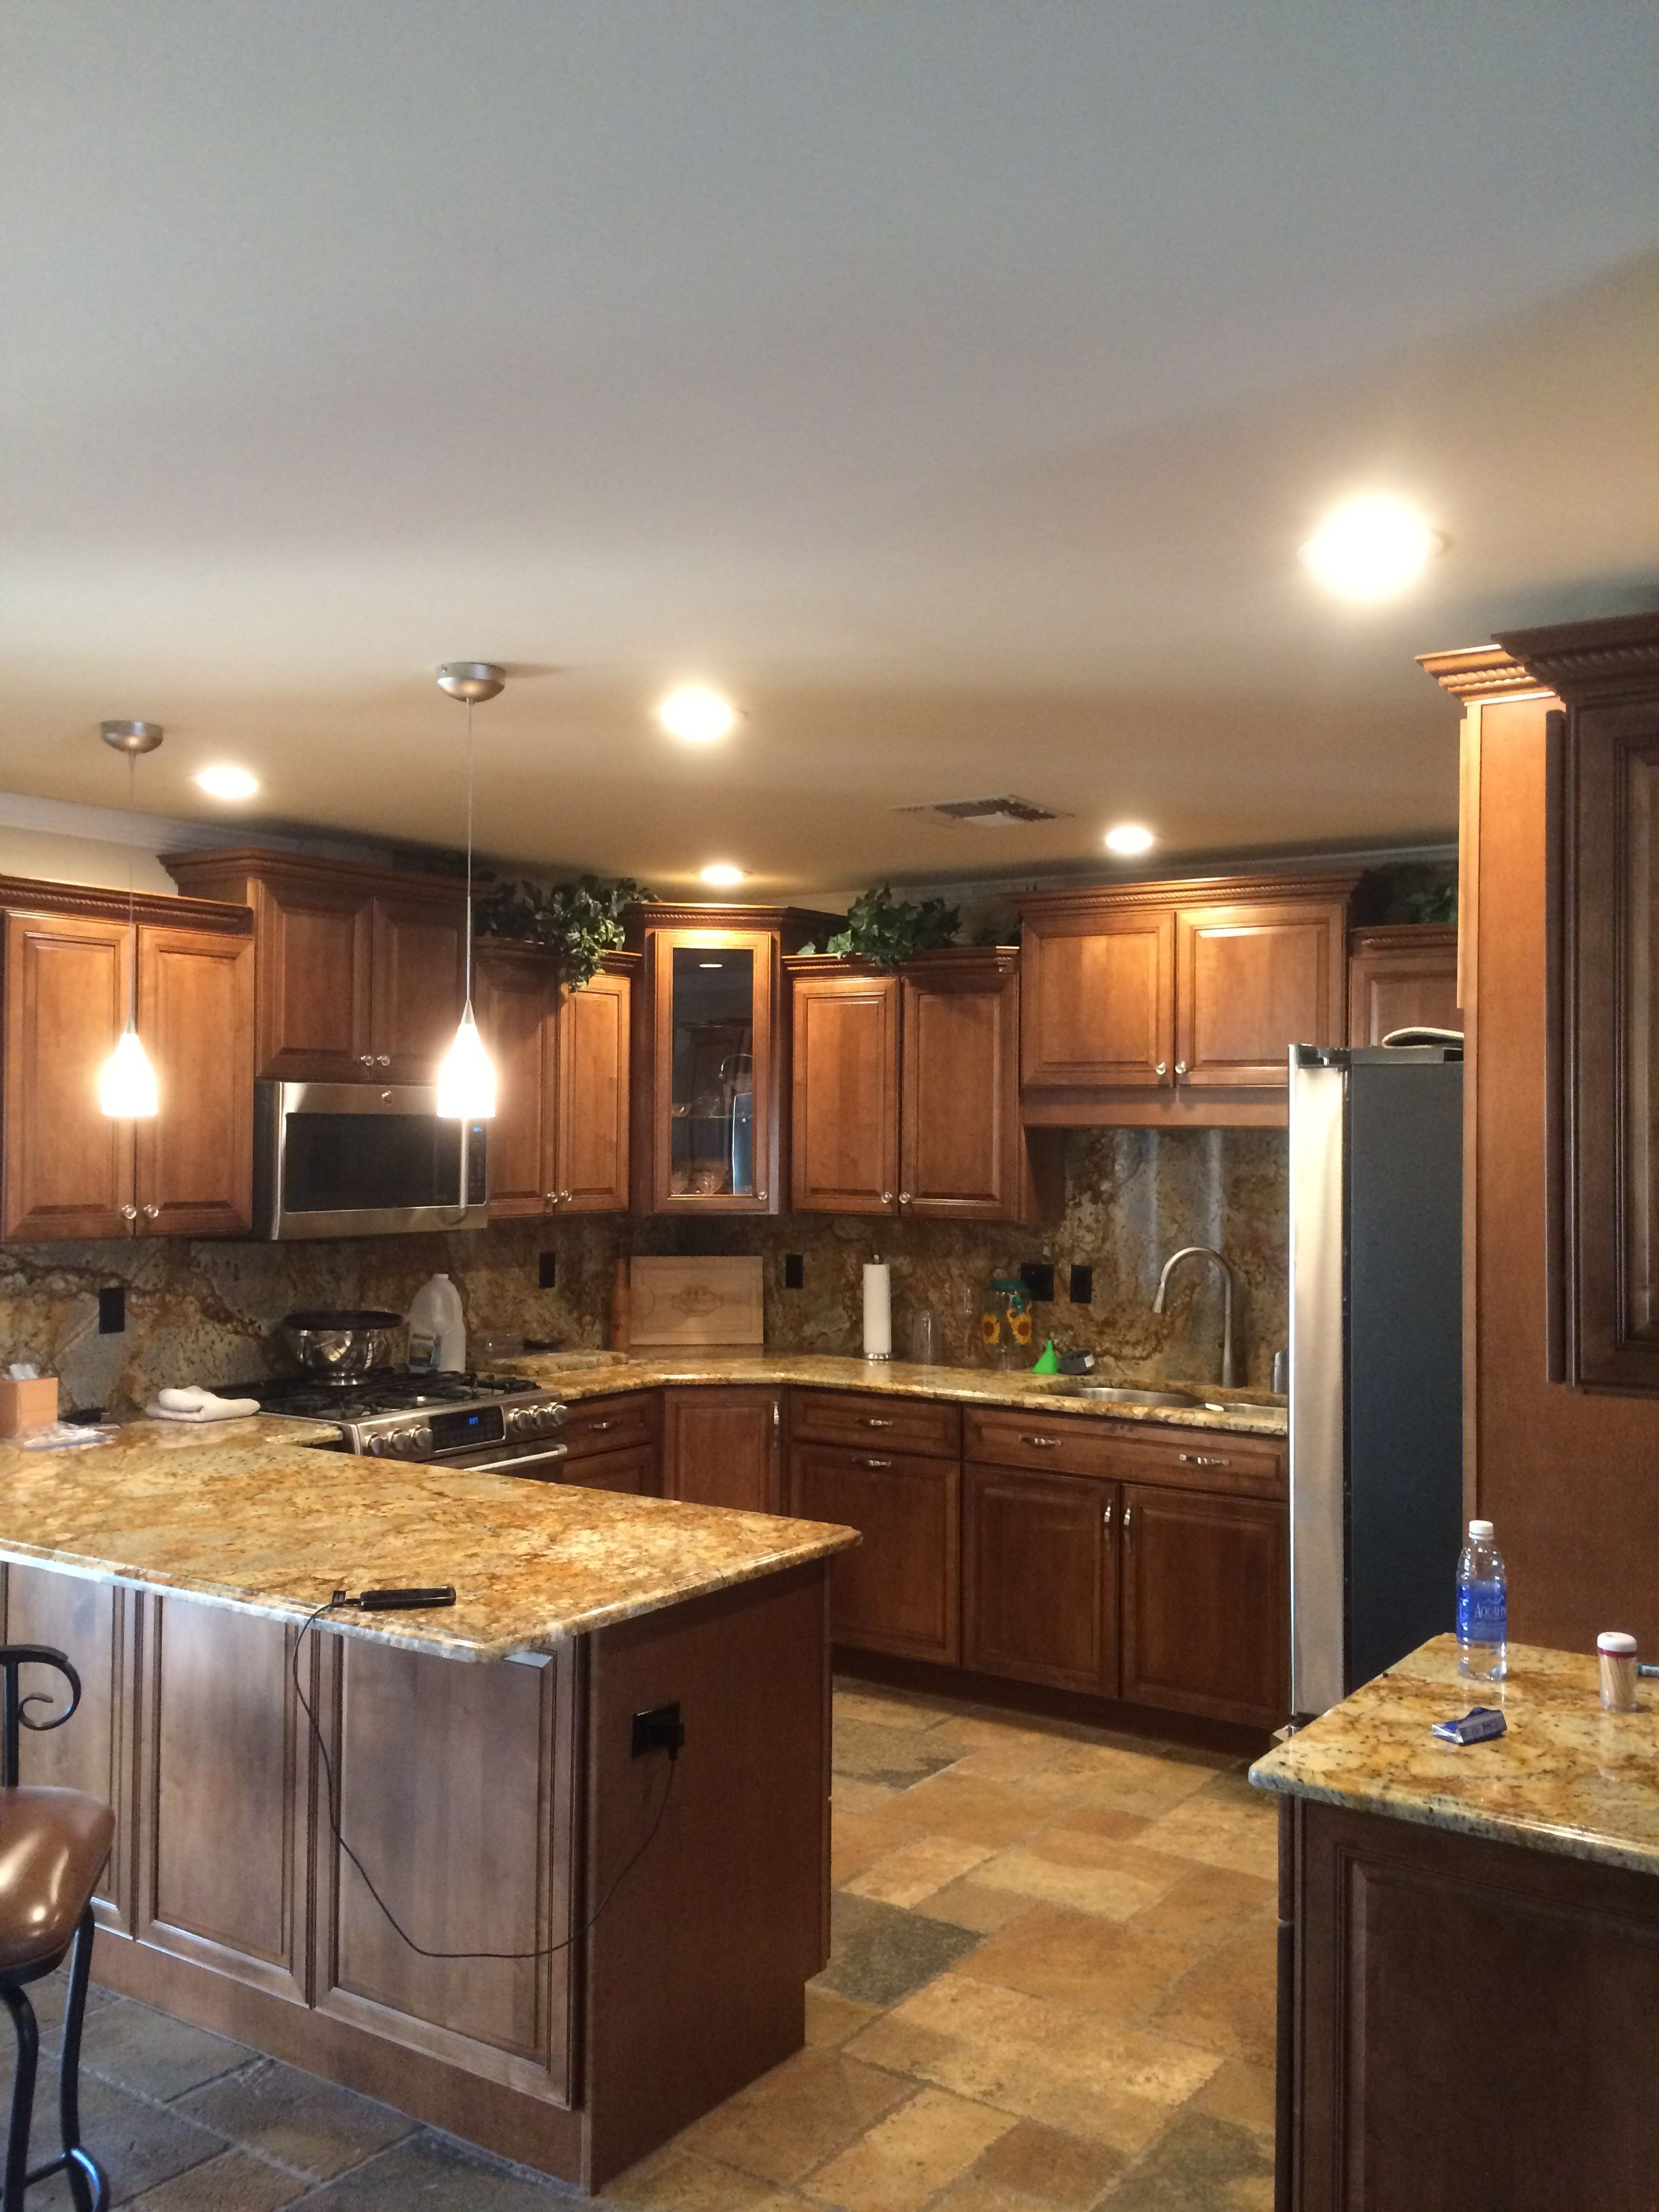 Az Recessed Lighting Installation Of 4 Inch Leds In Kitchen Az Recessed Lighting Installation